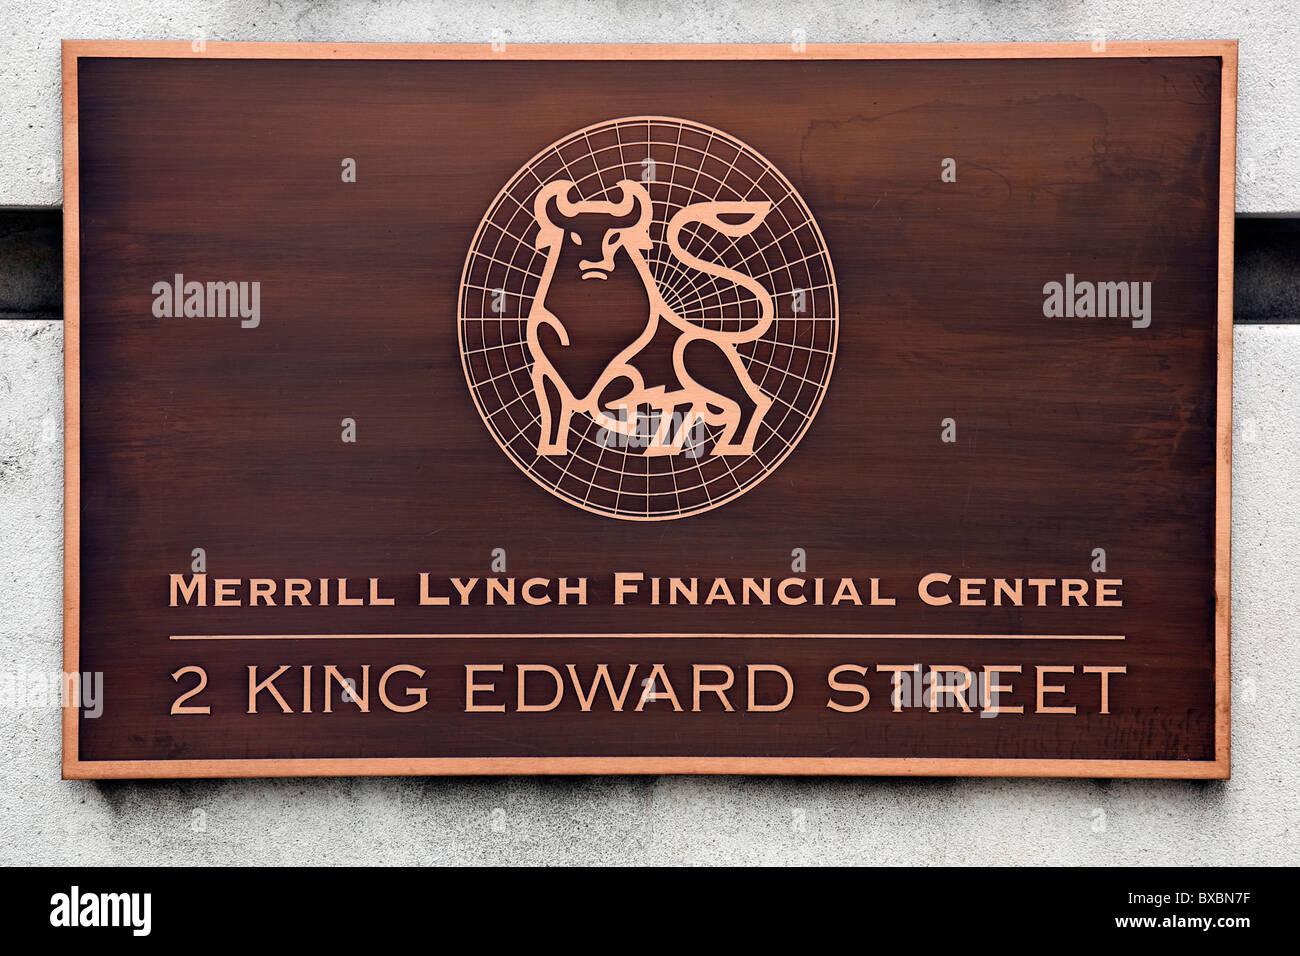 Headquarters of the investment bank and financial service company Merrill Lynch in London, England, United Kingdom, - Stock Image